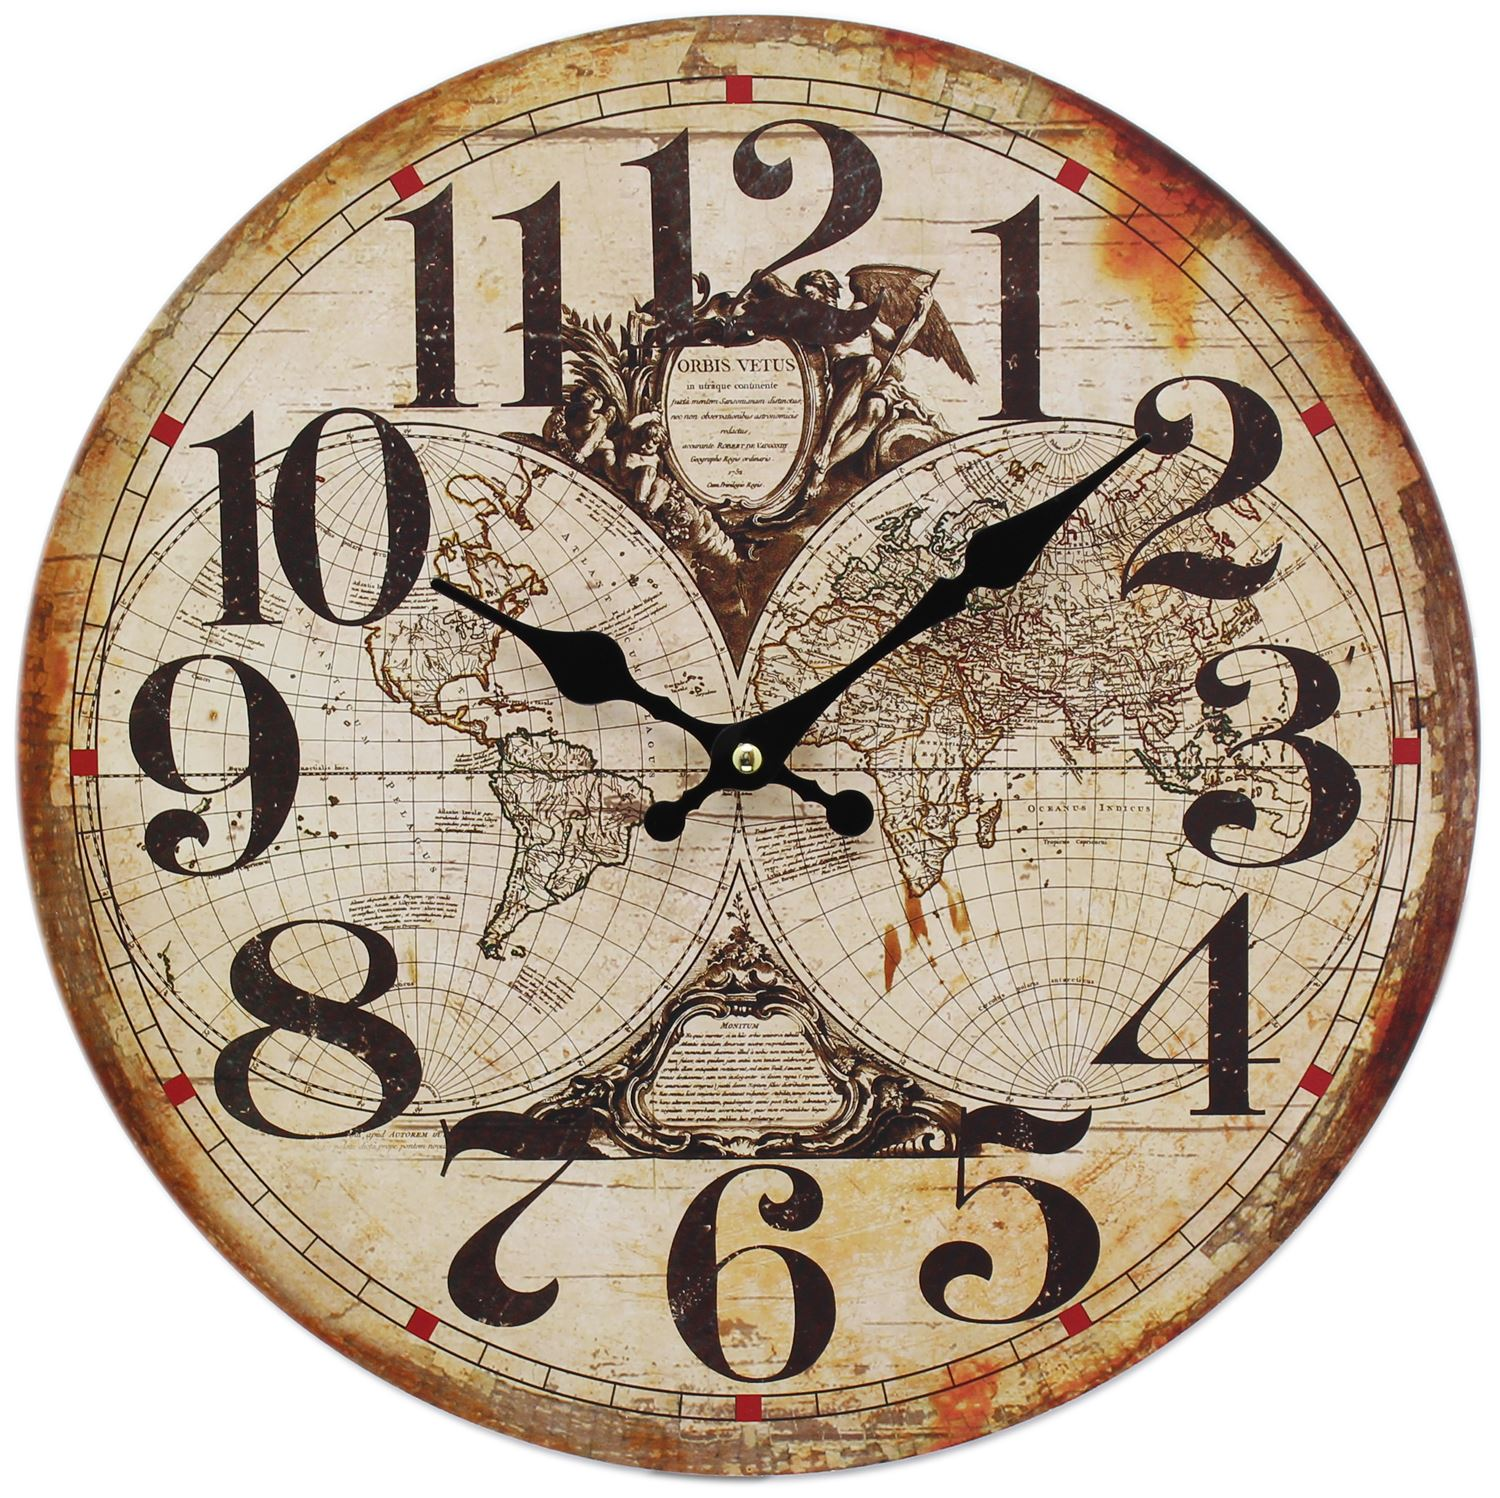 Wooden nautical hanging wall clock 34cm old world clock this wonderful nautical clock featuring a world map design would make a lovely addition to any home great for kitchens breakfast rooms bathrooms or gumiabroncs Images